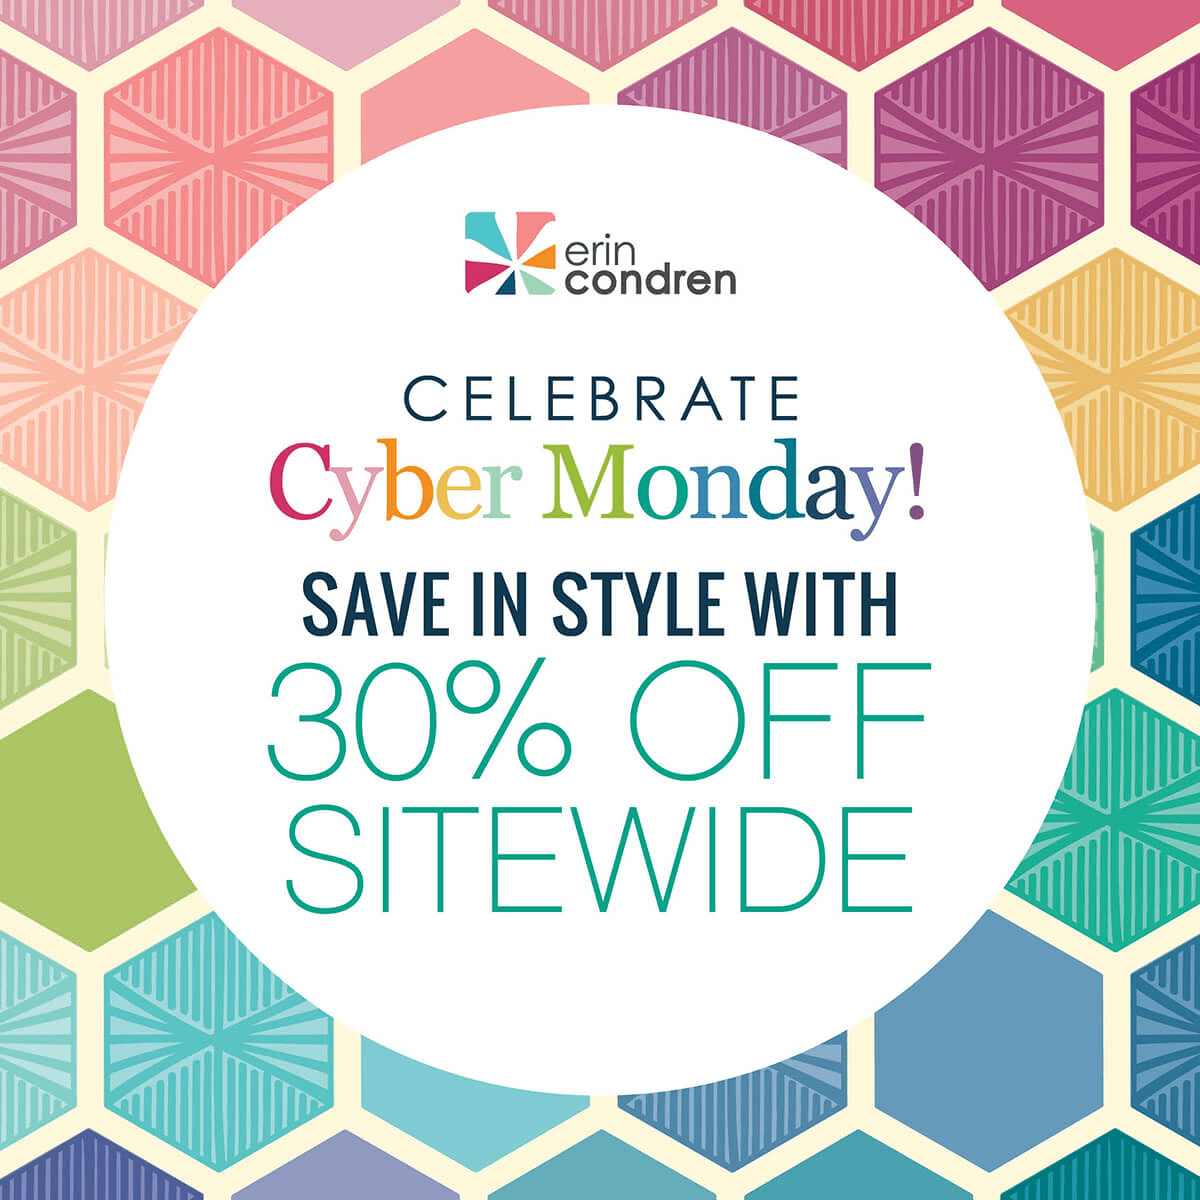 Erin Condren Cyber Monday Coupon ENDS TONIGHT: 30% Off Coupon!